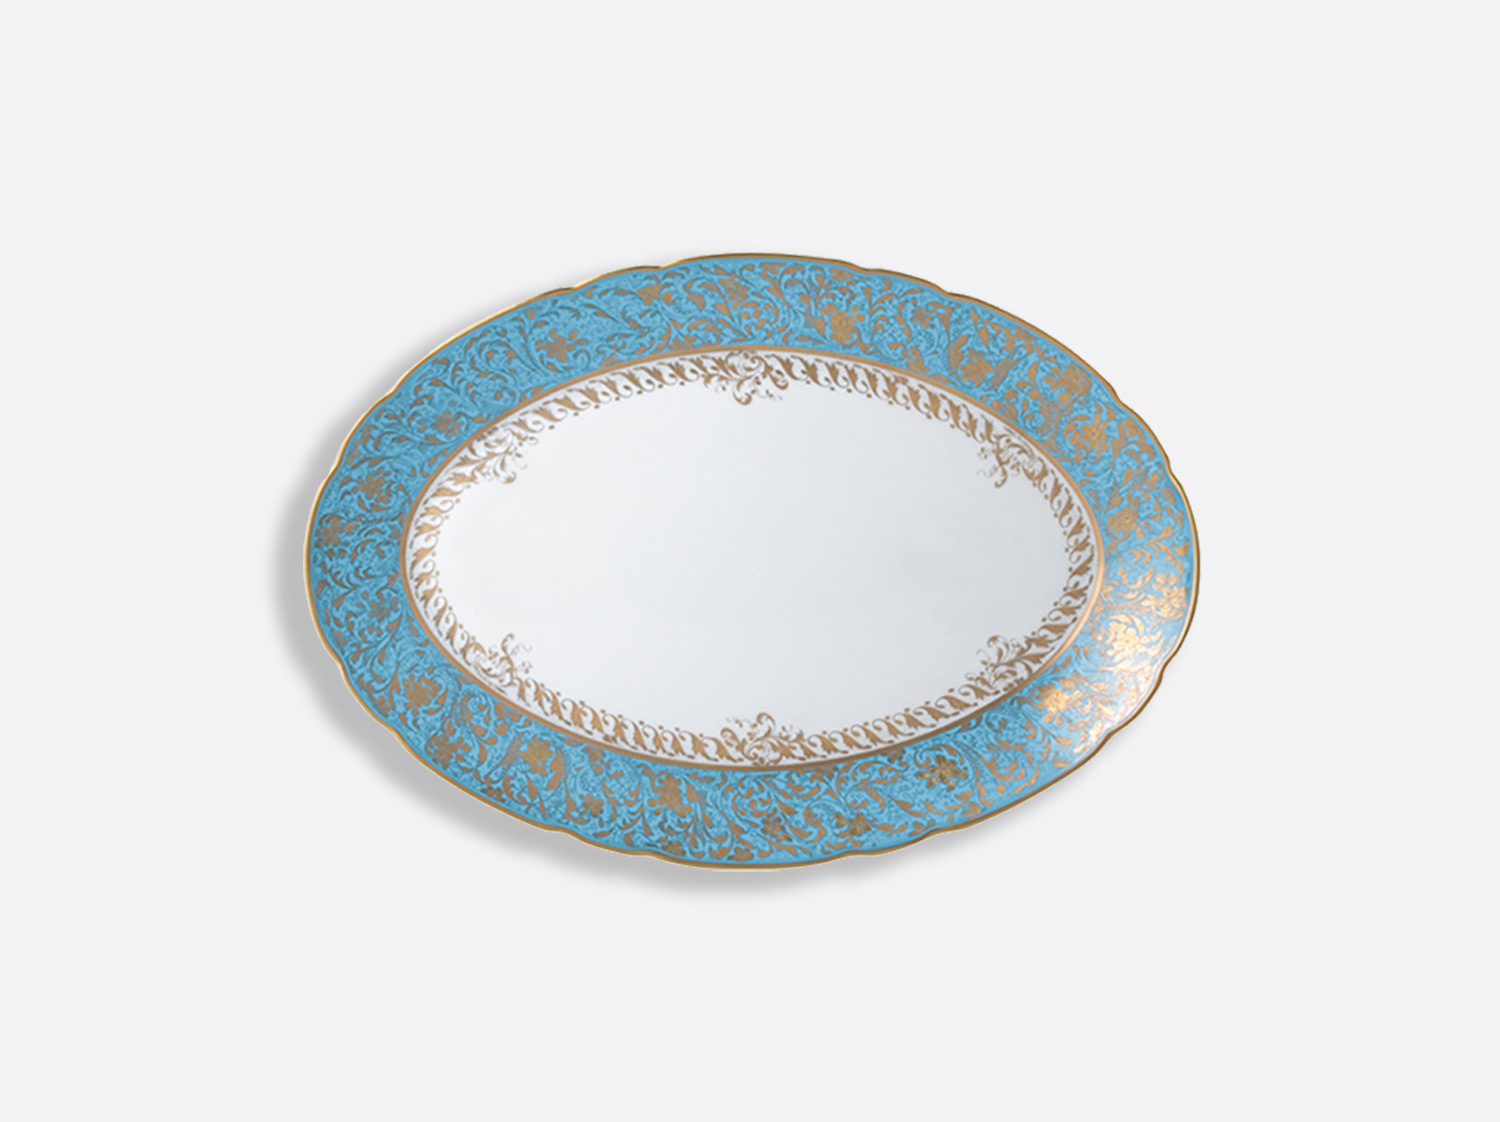 Plat ovale 33 cm en porcelaine de la collection Eden turquoise Bernardaud